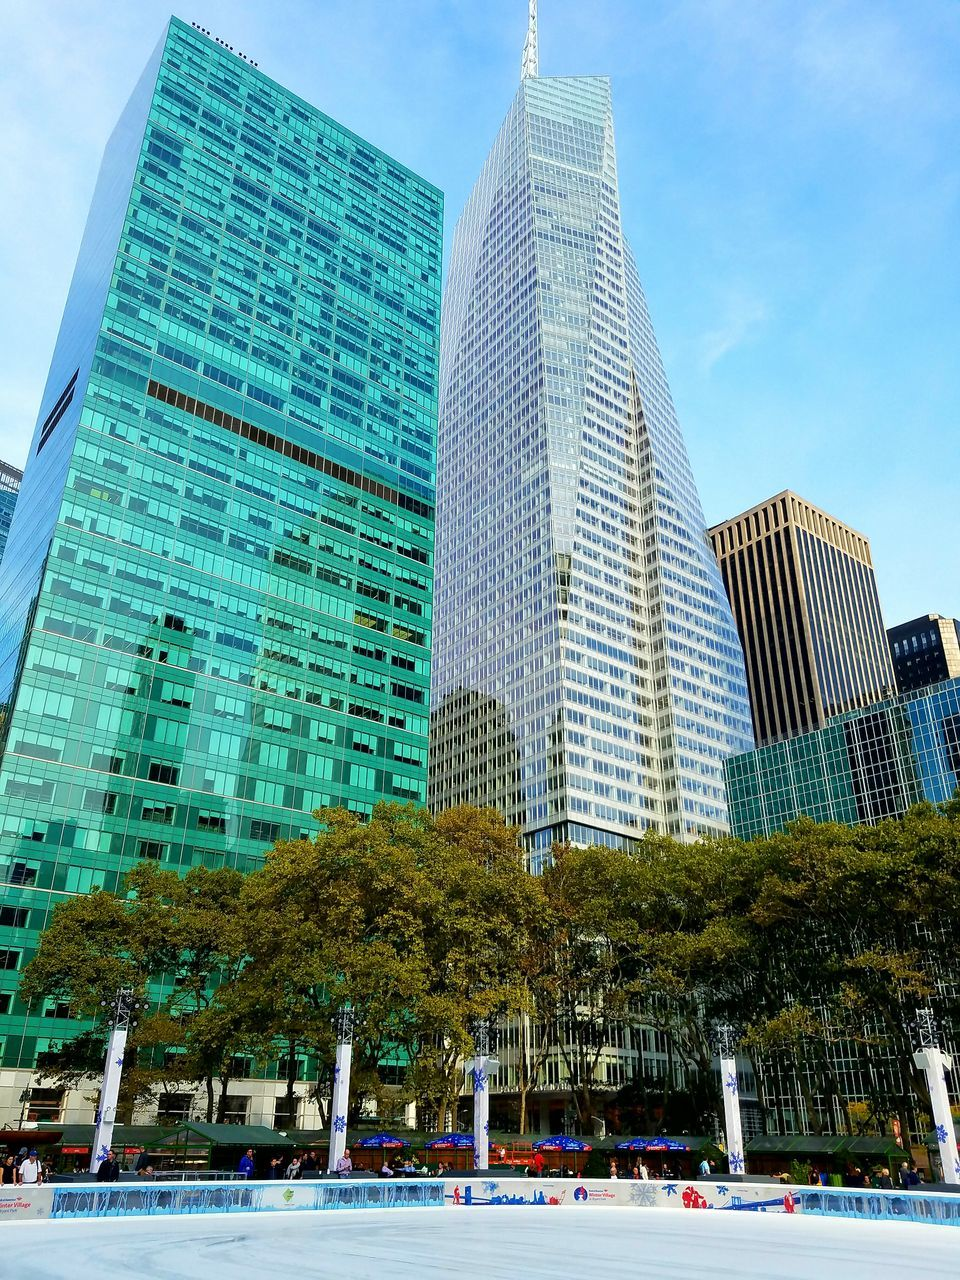 architecture, skyscraper, modern, building exterior, built structure, city, sky, low angle view, city life, tree, outdoors, travel destinations, day, downtown district, no people, cityscape